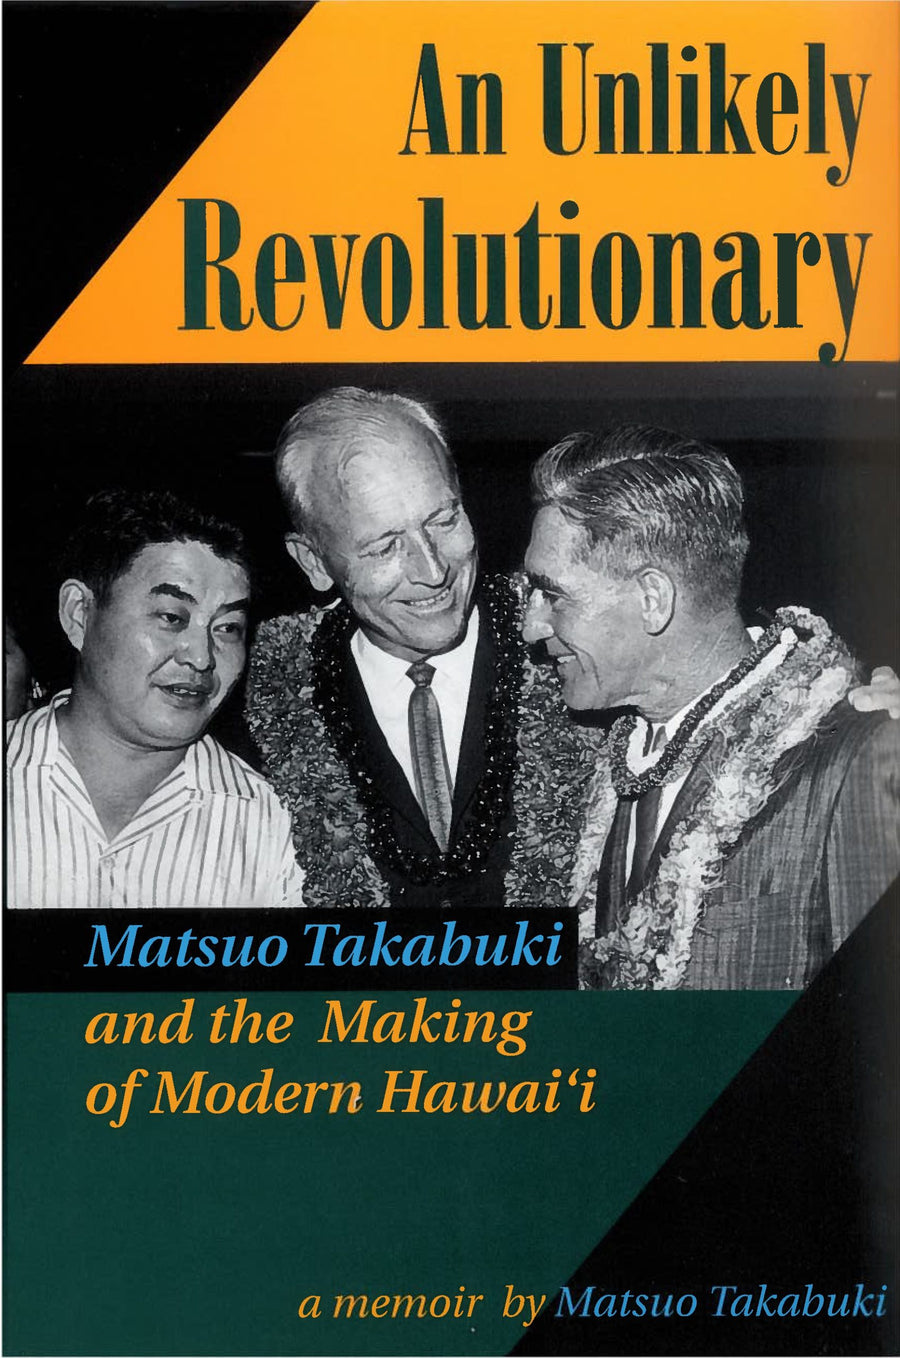 An Unlikely Revolutionary: Matsuo Takabuki and the Making of Modern Hawaiʻi